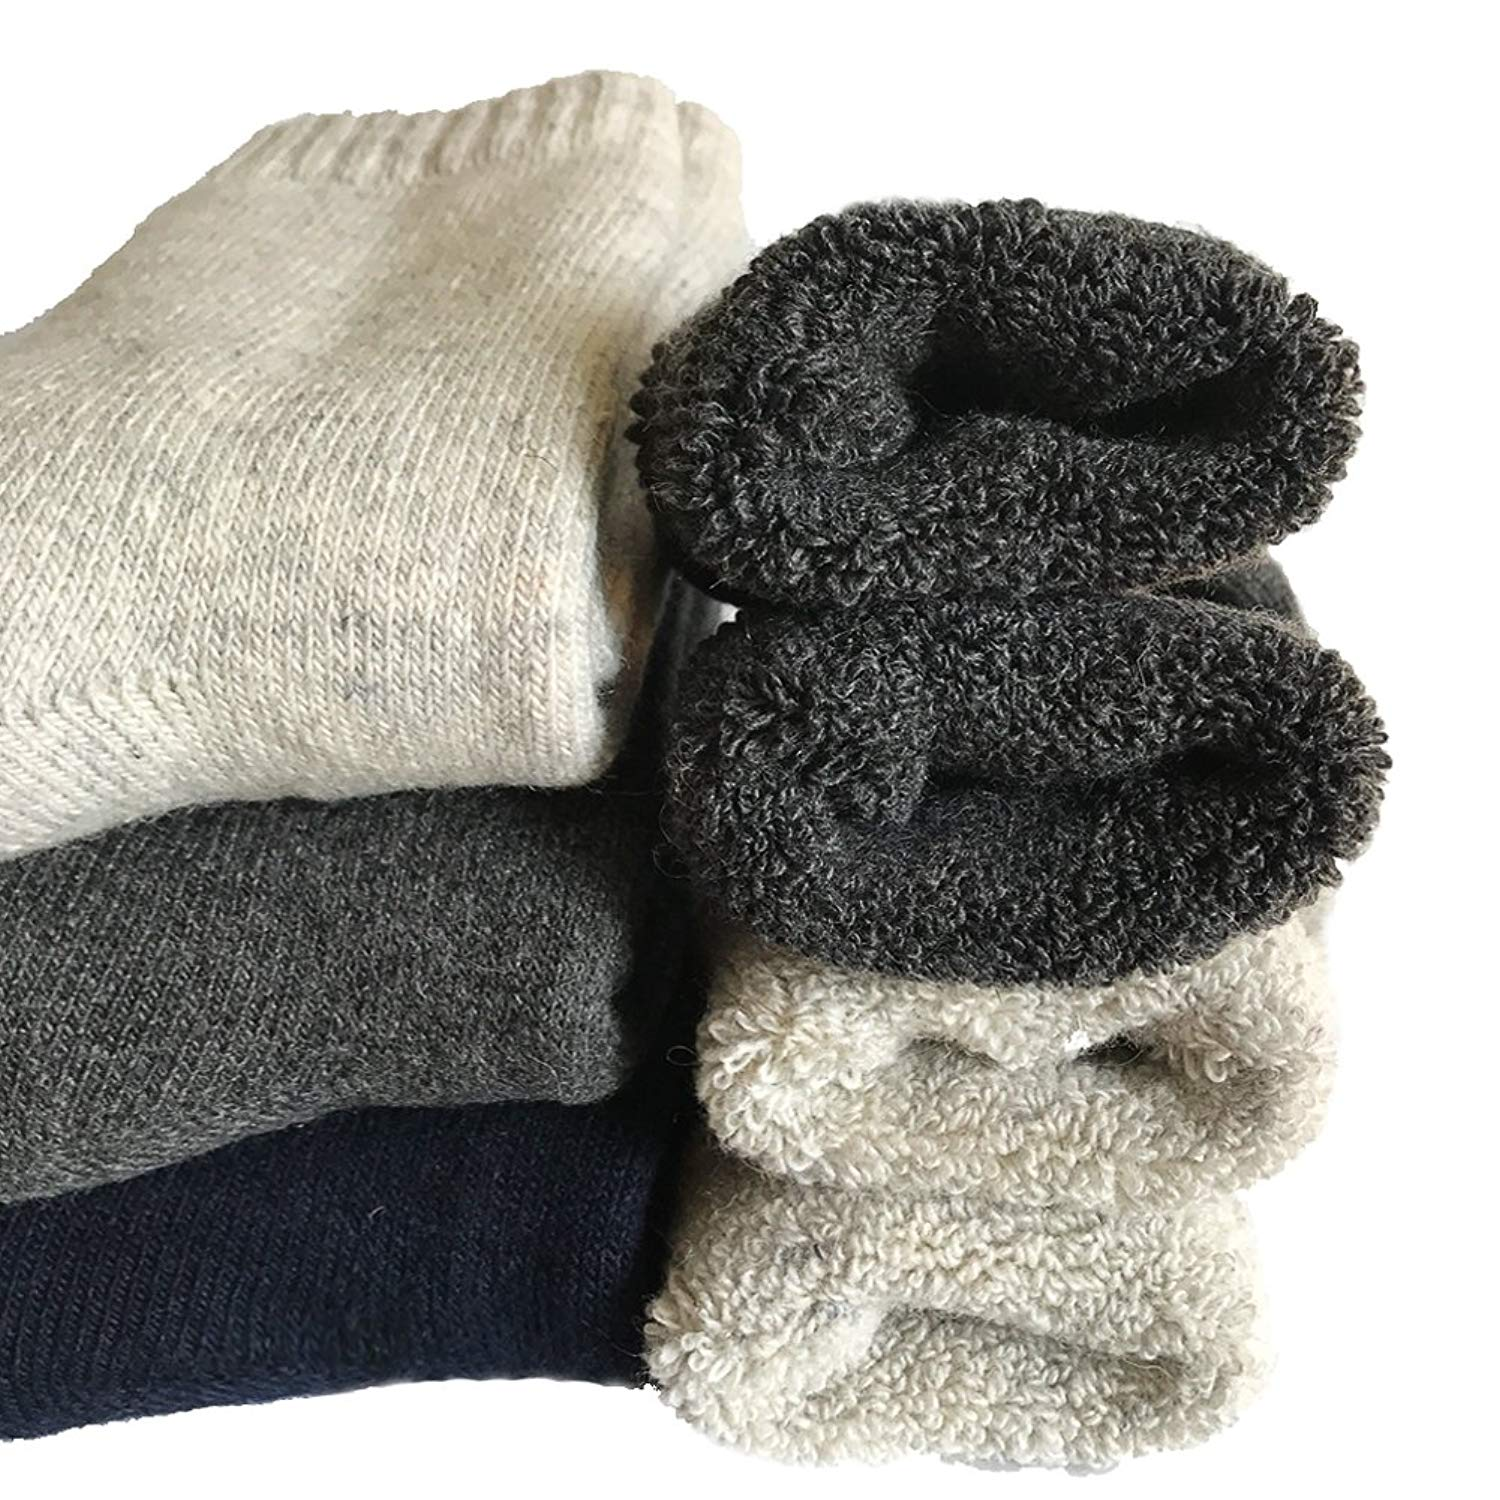 600a474410f Get Quotations · Mens Heavy Thick Wool Socks - Soft Warm Comfort Winter  Crew Socks (Pack of 3